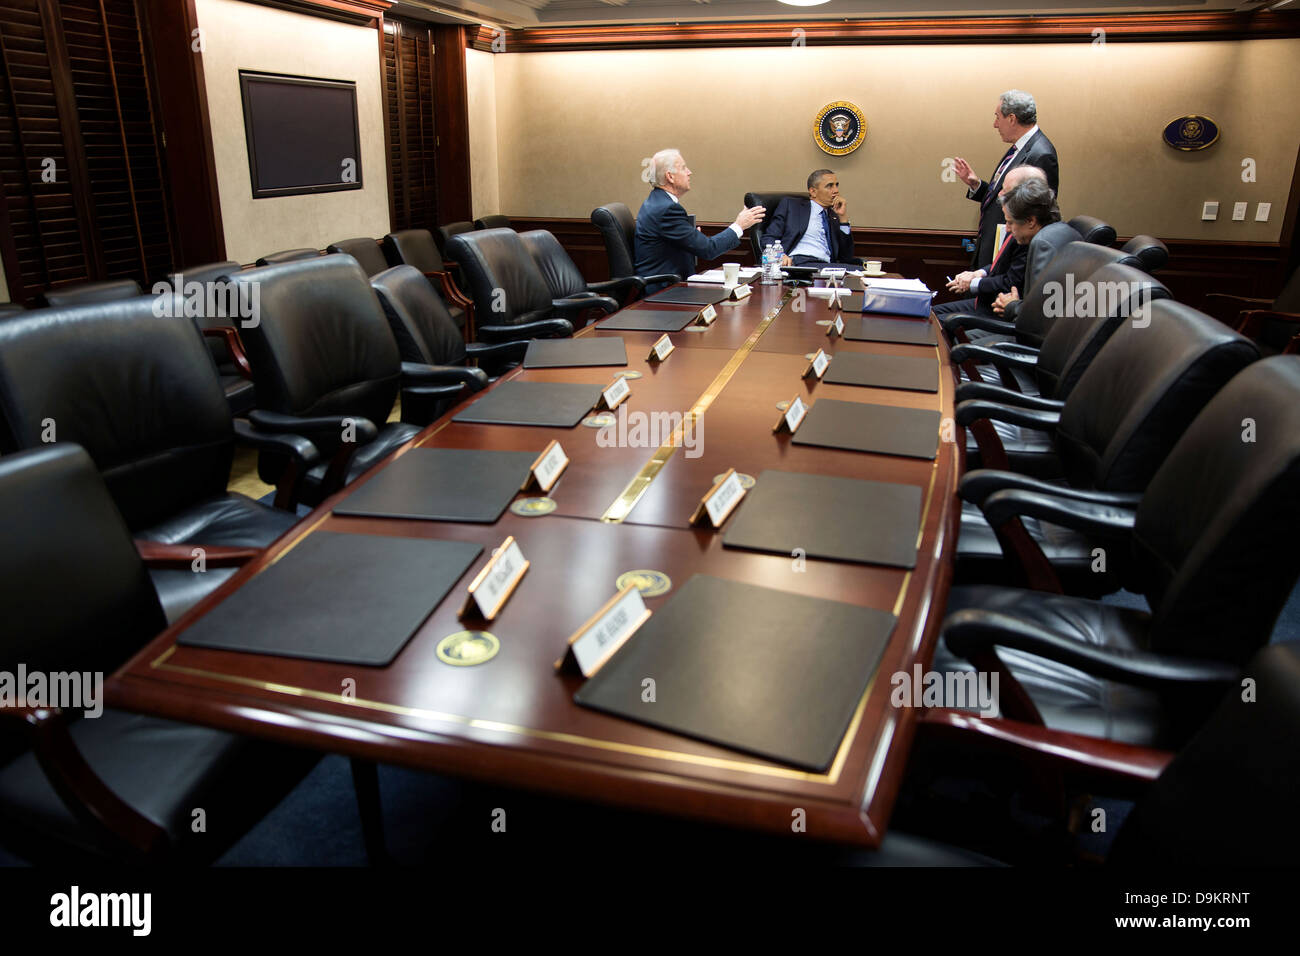 US President Barack Obama and Vice President Joe Biden talk with advisors following a National Security Staff meeting - Stock Image